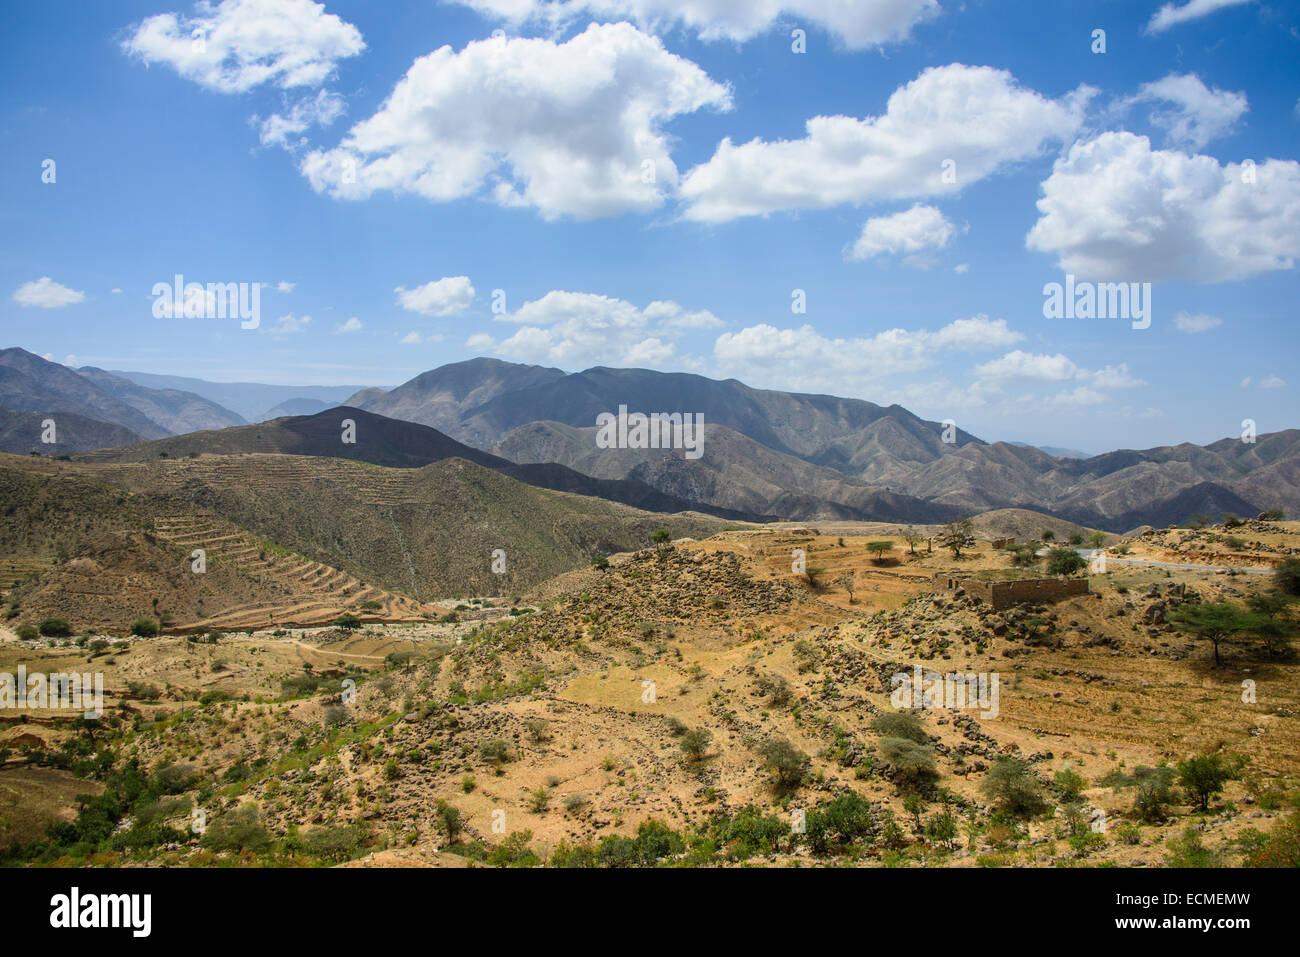 Outlook over the mountains along the road from Massawa to Asmarra, Eritrea - Stock Image